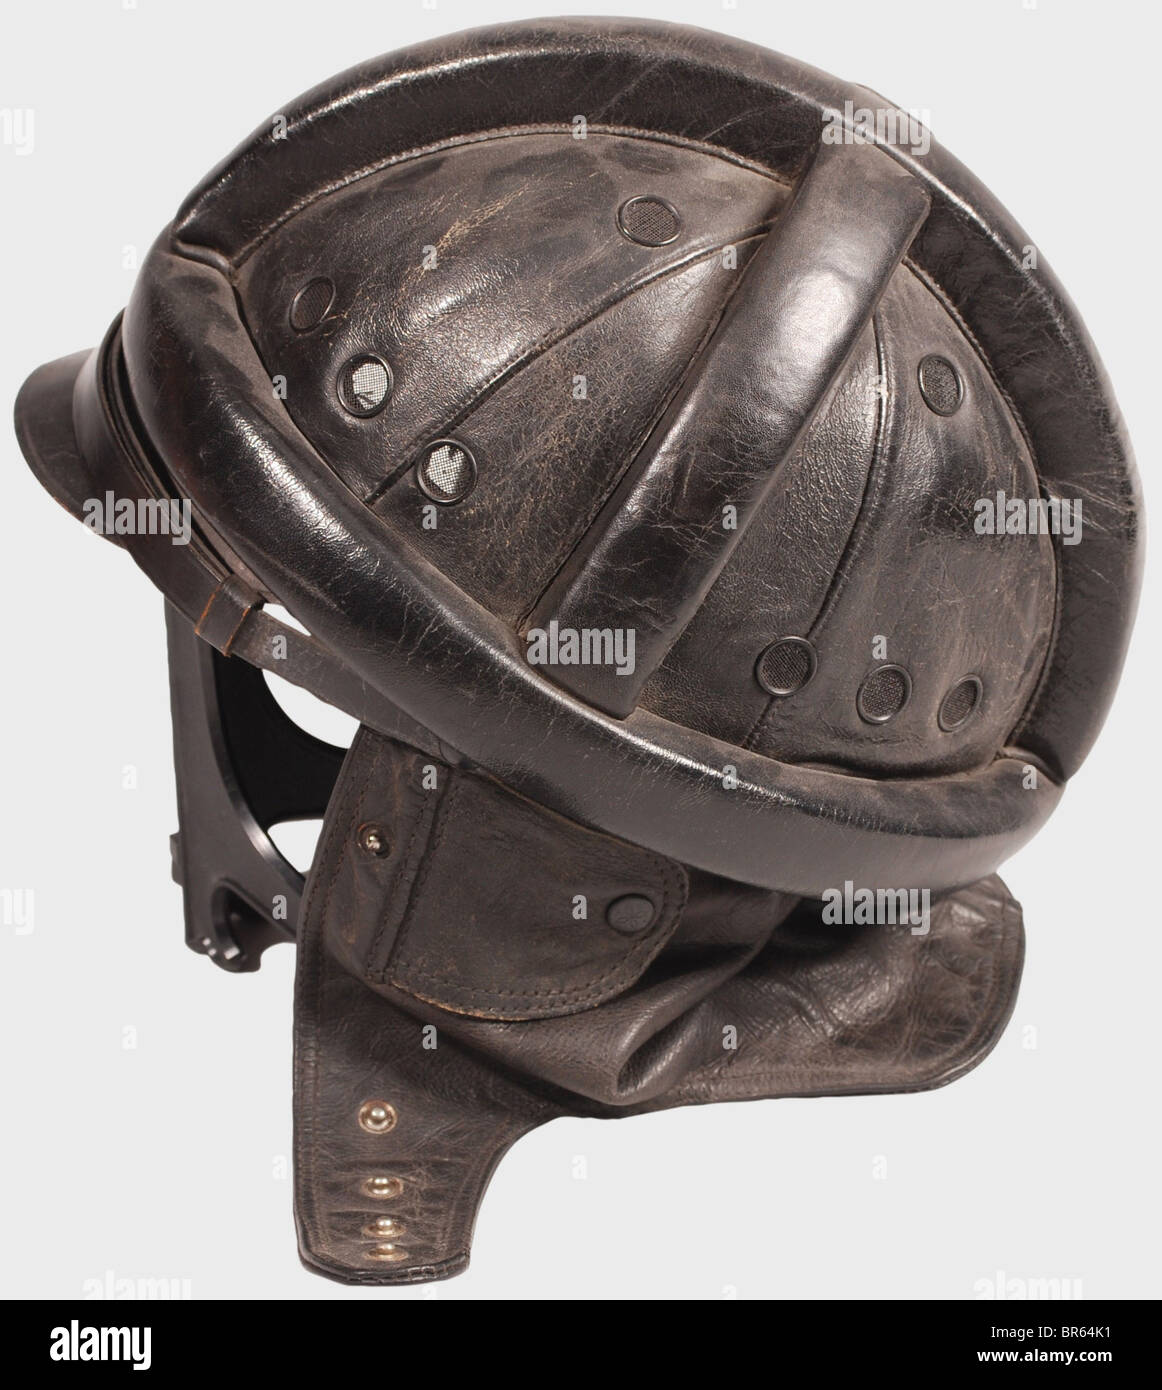 A Luftwaffe motorcycle suit., A black leather crash helmet with protective cylindrical padding, a one-piece neck Stock Photo